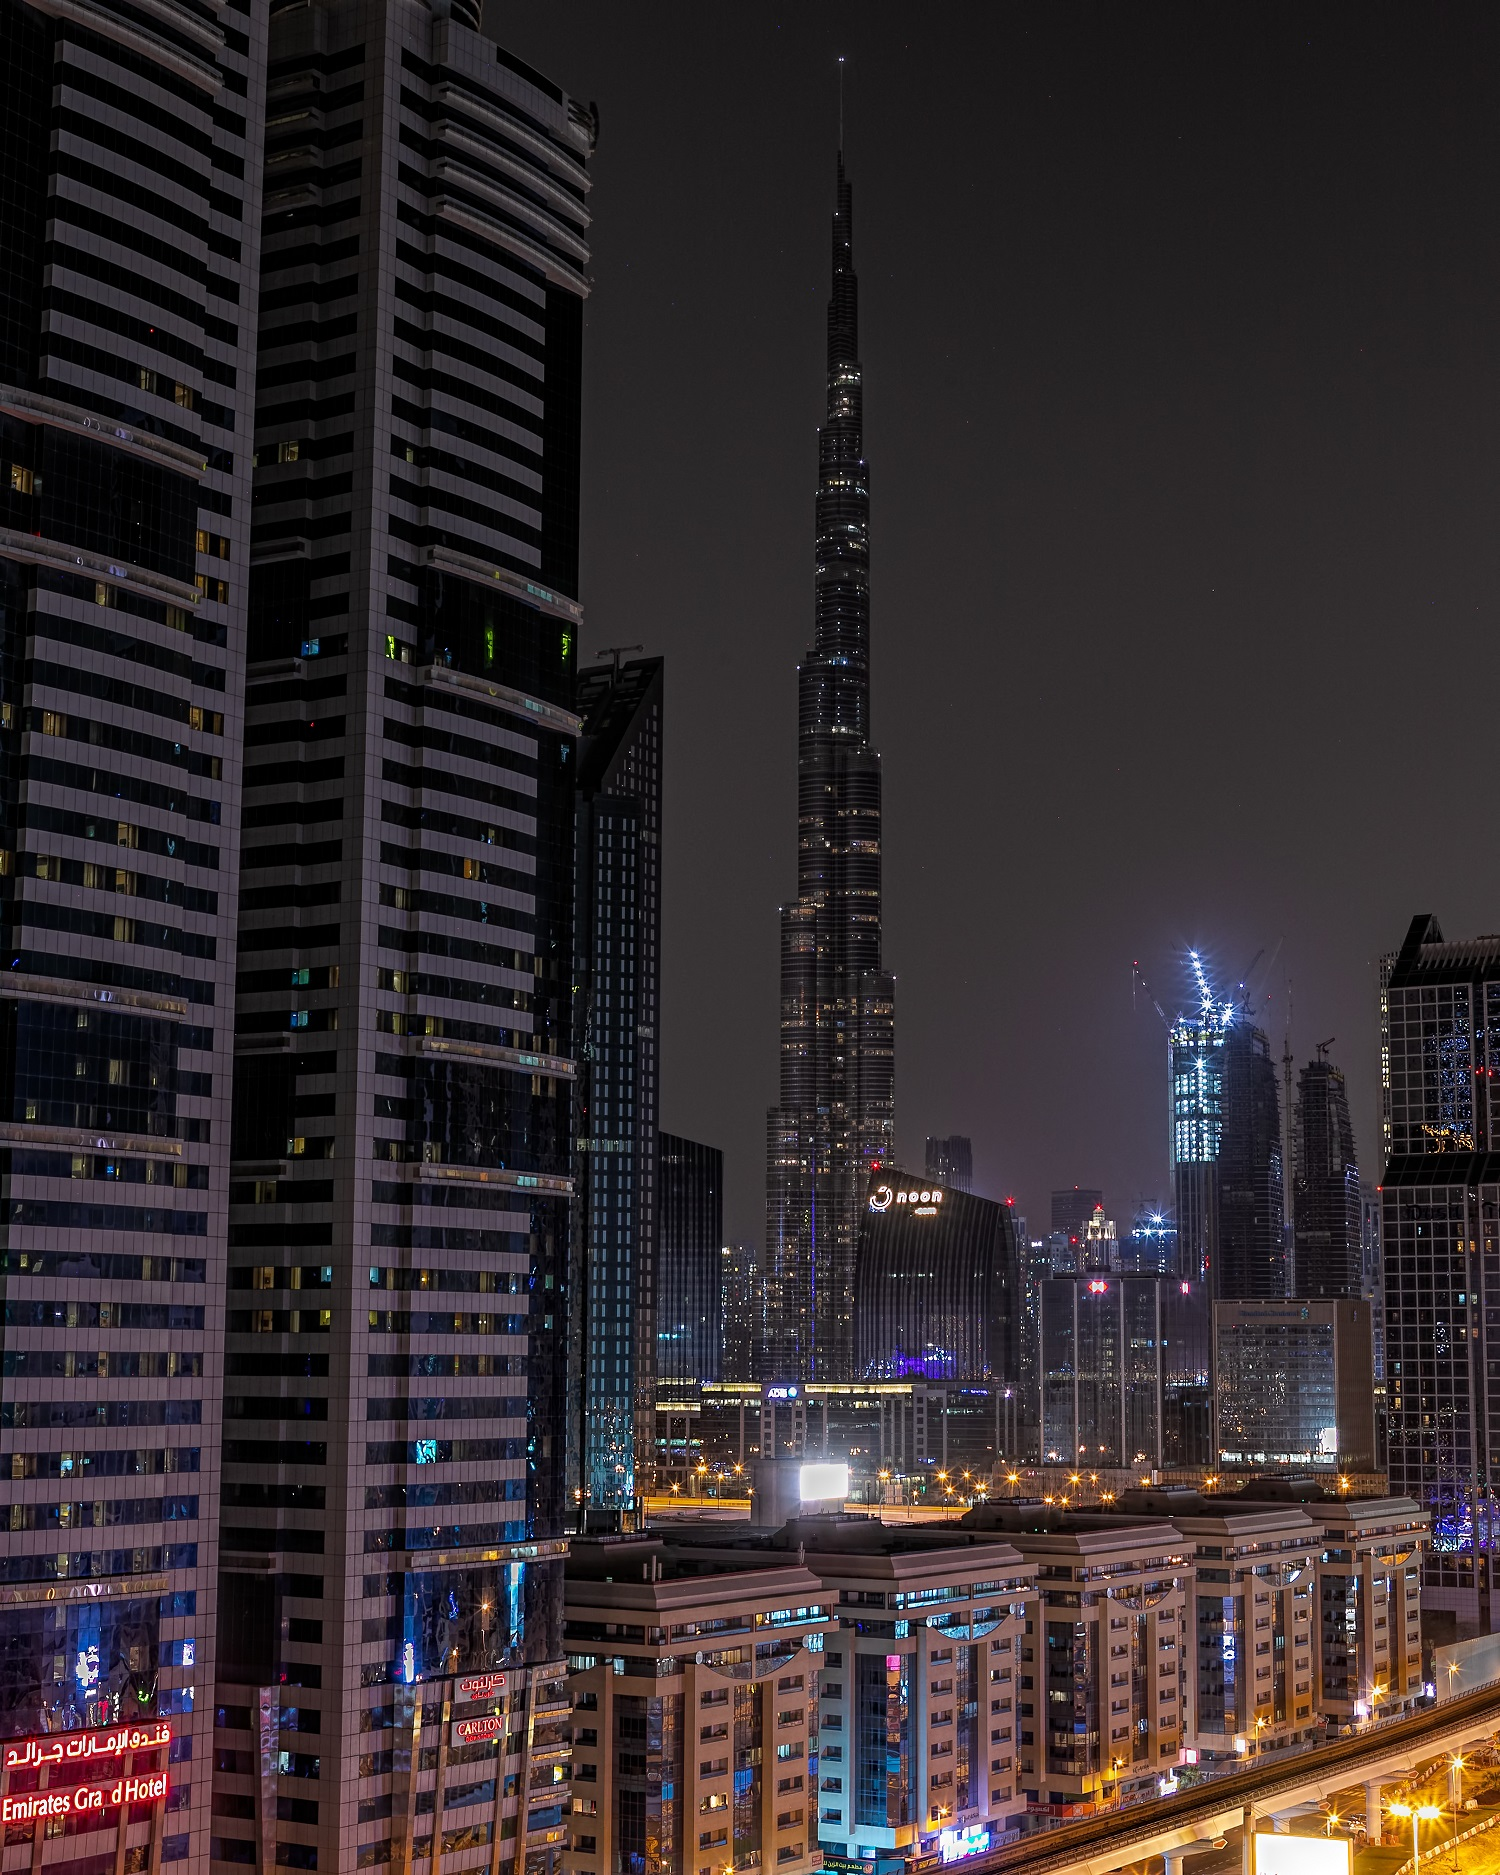 Dubai saves 178 MW in electricity consumption during Earth Hour 2020, equivalent to a reduction of 74 tonnes of CO2 emissions